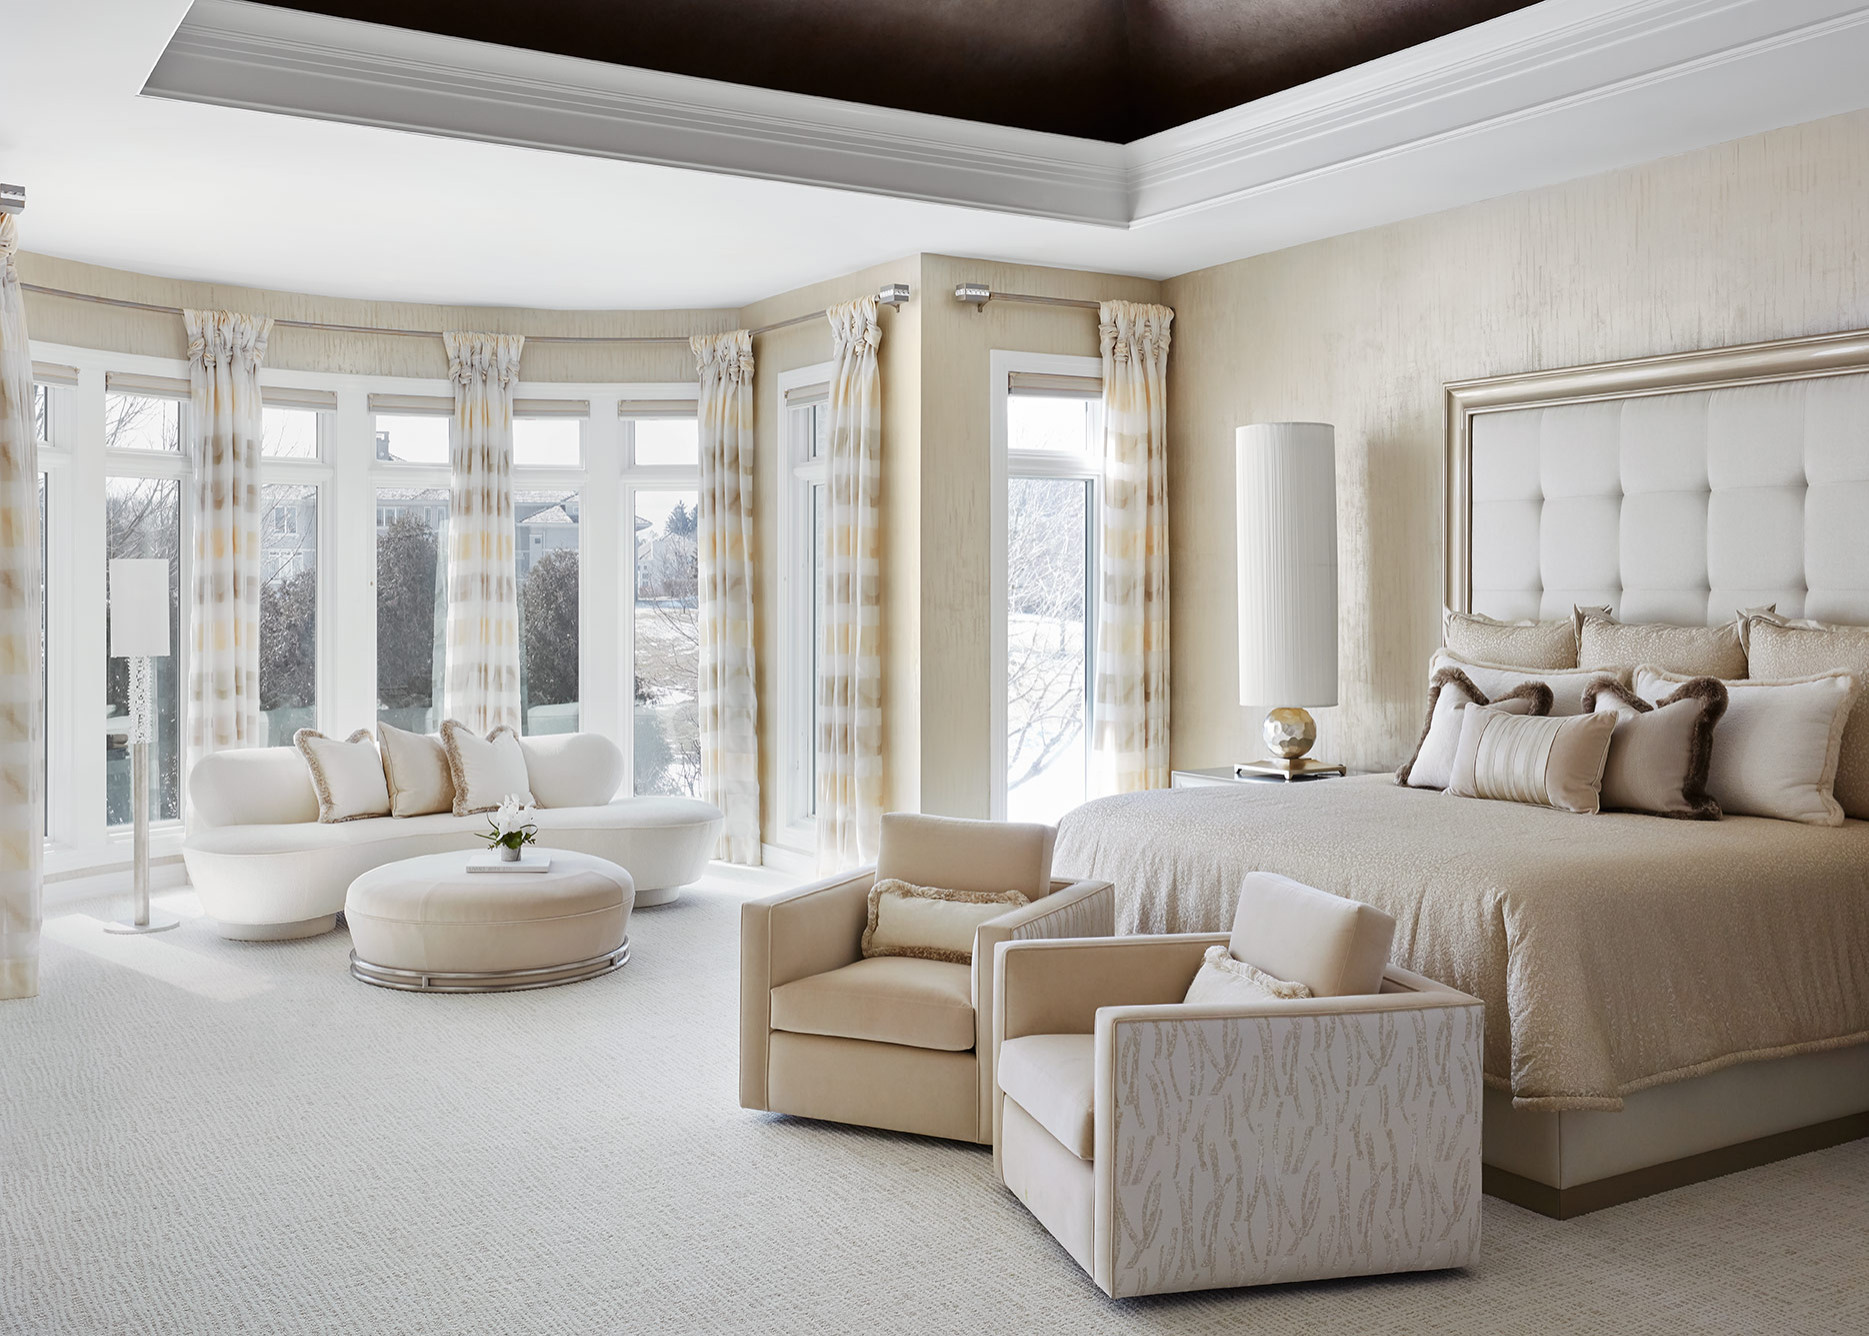 75 Beautiful Huge Bedroom Pictures & Ideas - November, 2020 | Houzz